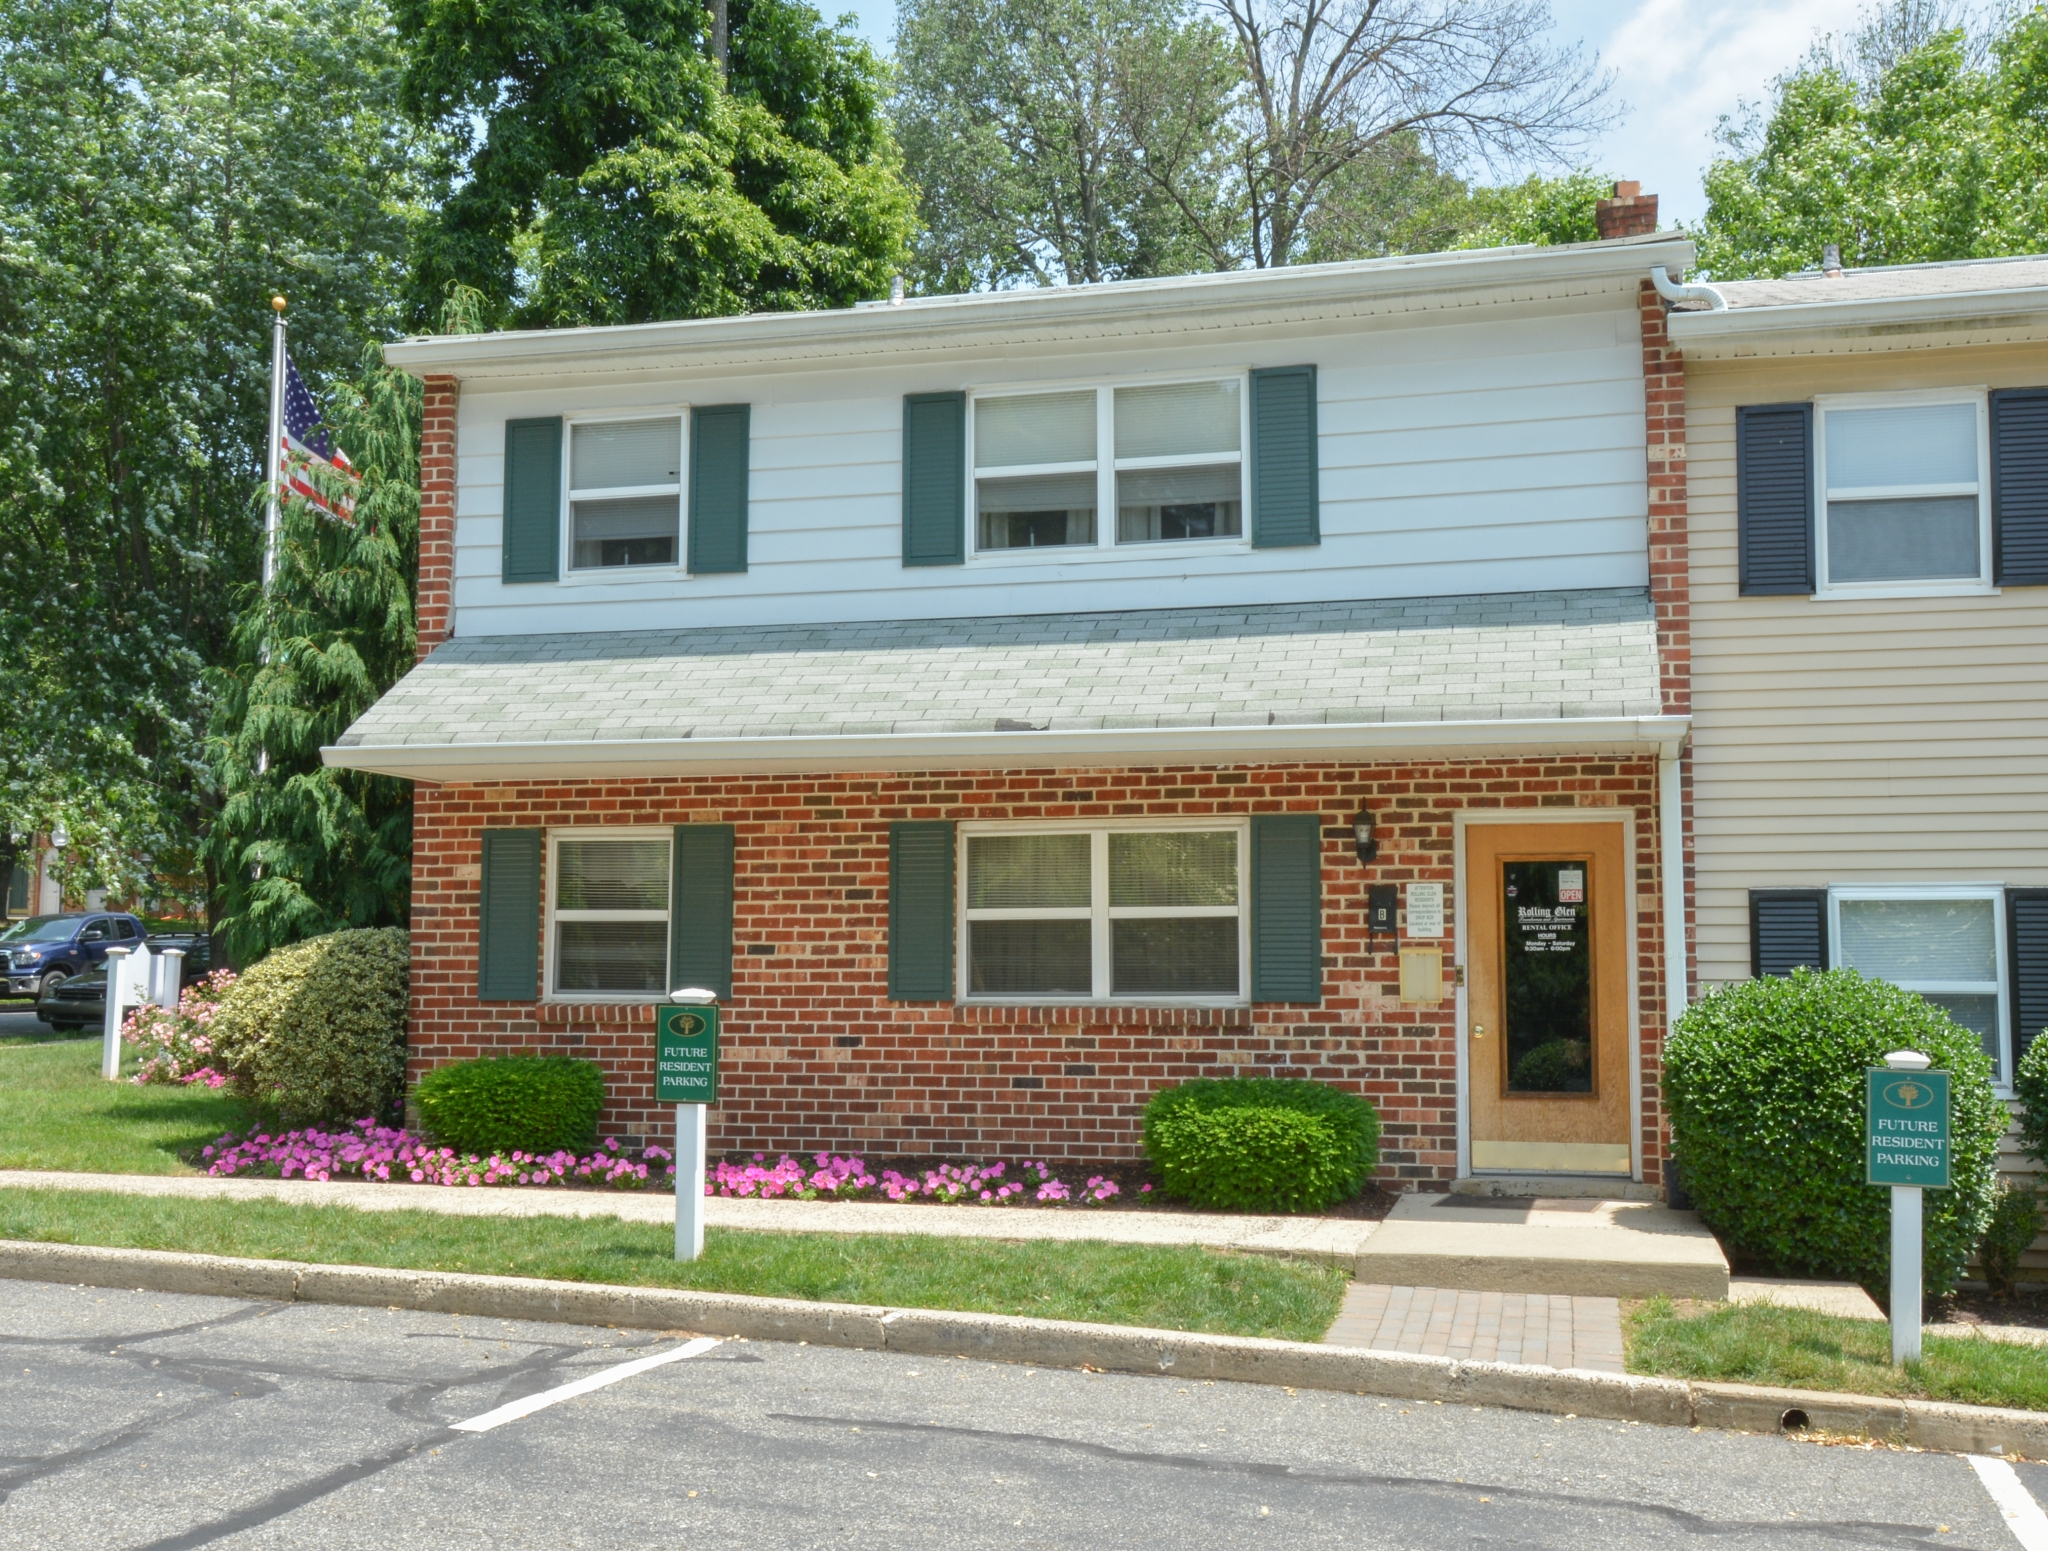 Friendly Office Staff | 1 Bedroom Apartments In Boothwyn PA | Rolling Glen Townhomes and Apartments